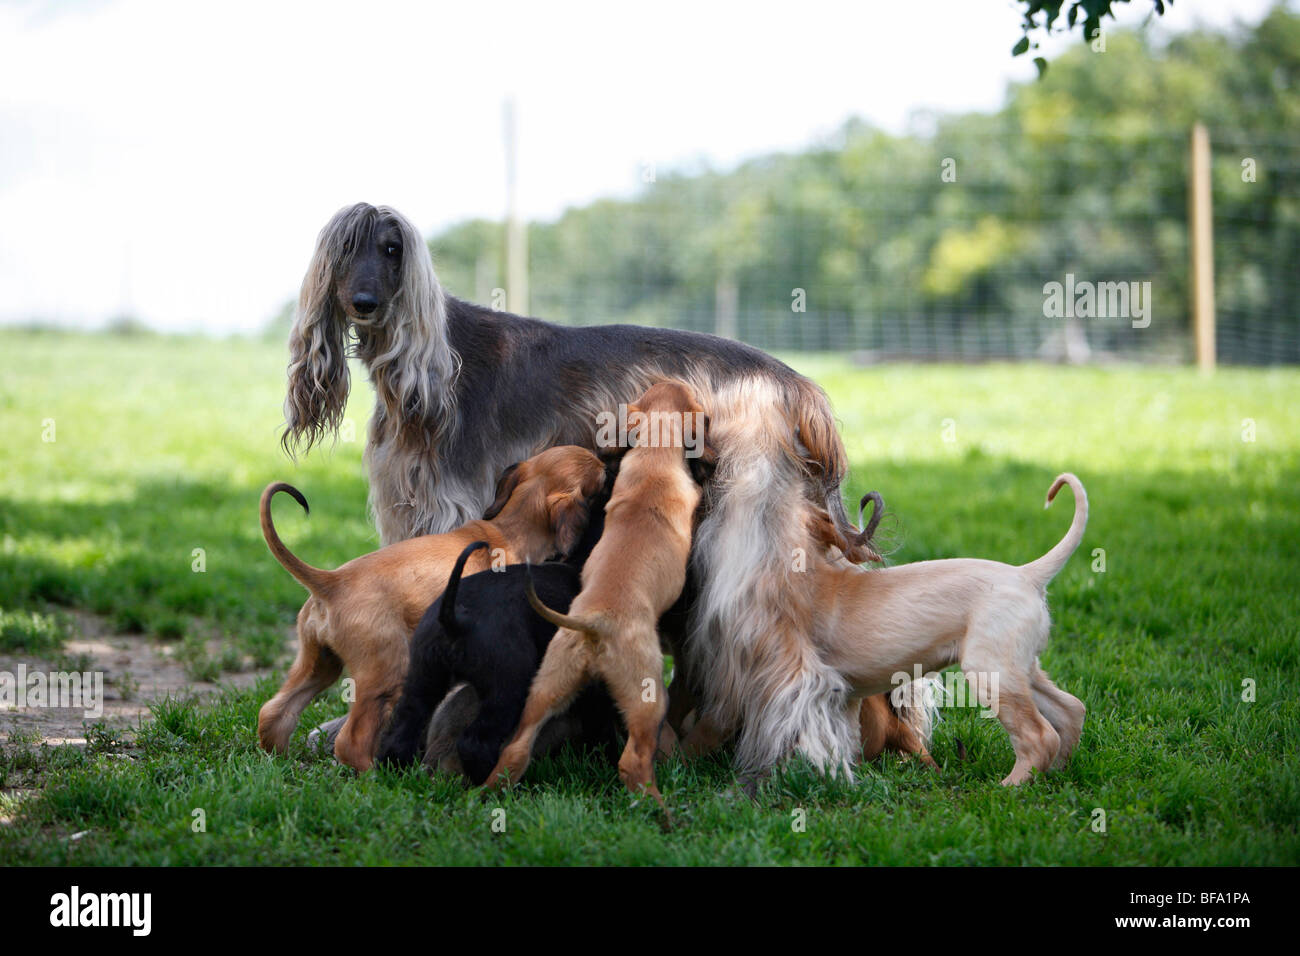 Dog Nursing Baby Animals Stock Photos & Dog Nursing Baby